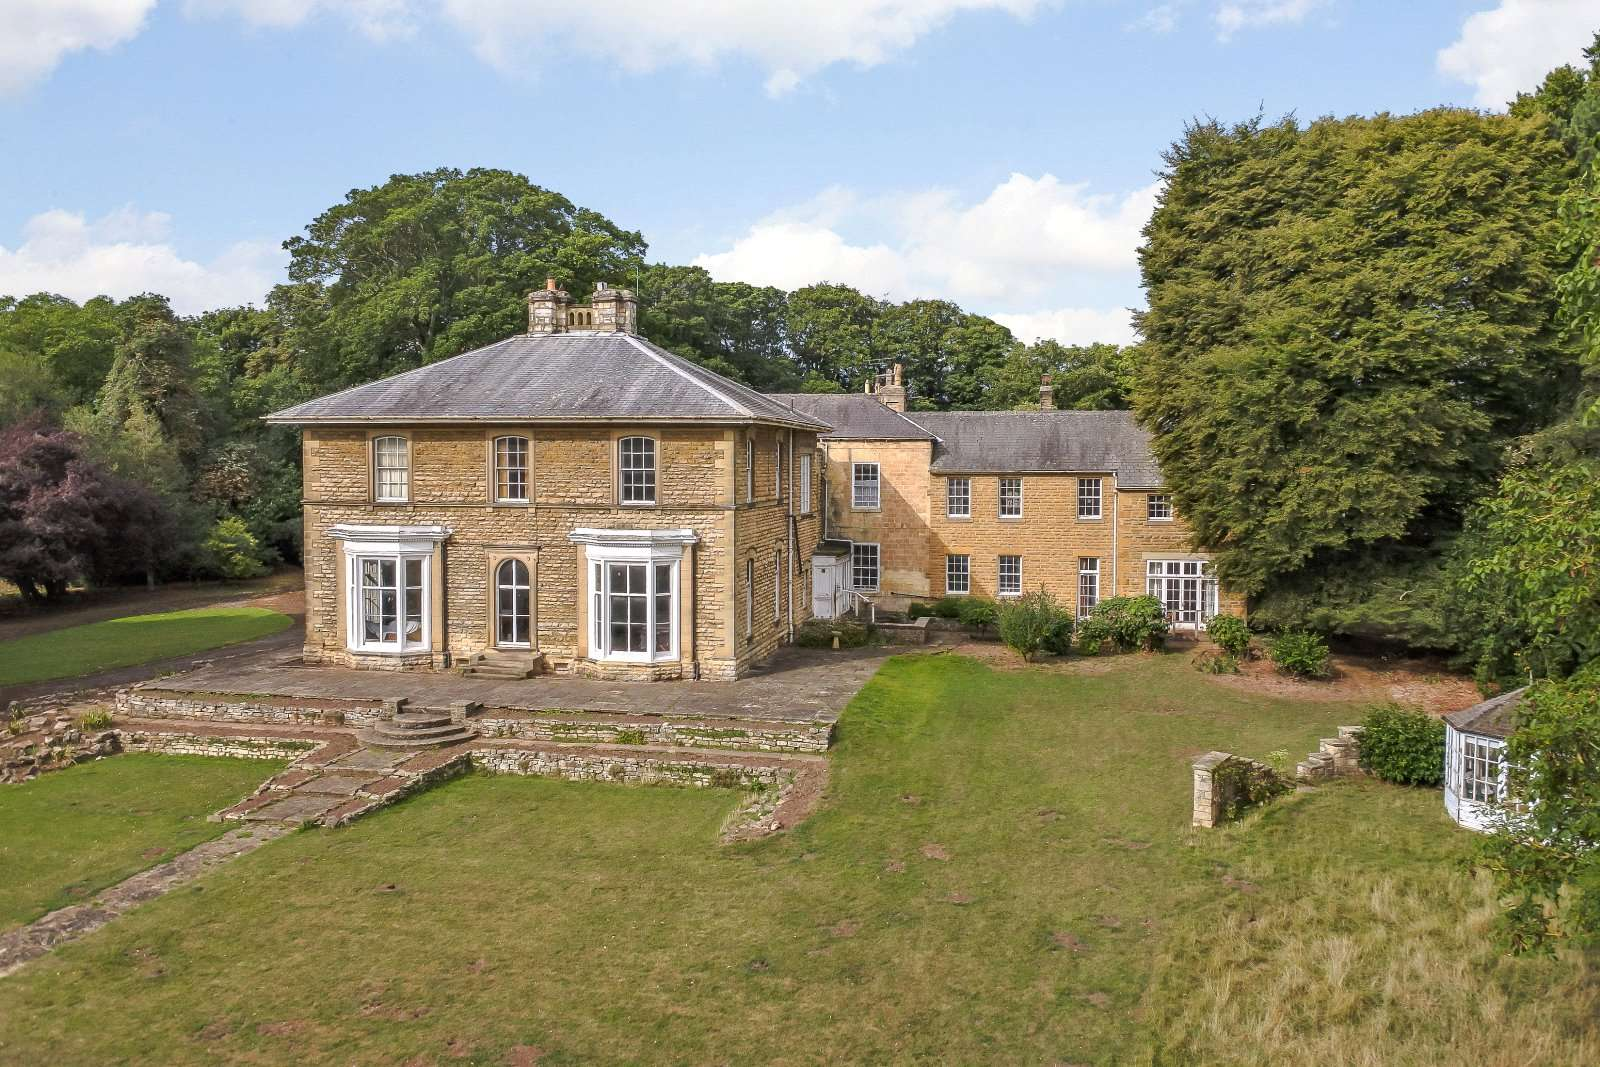 Lying in a private but accessible location near tadcaster half way between leeds and york this 12000 sq ft home is one of the finest properties in the